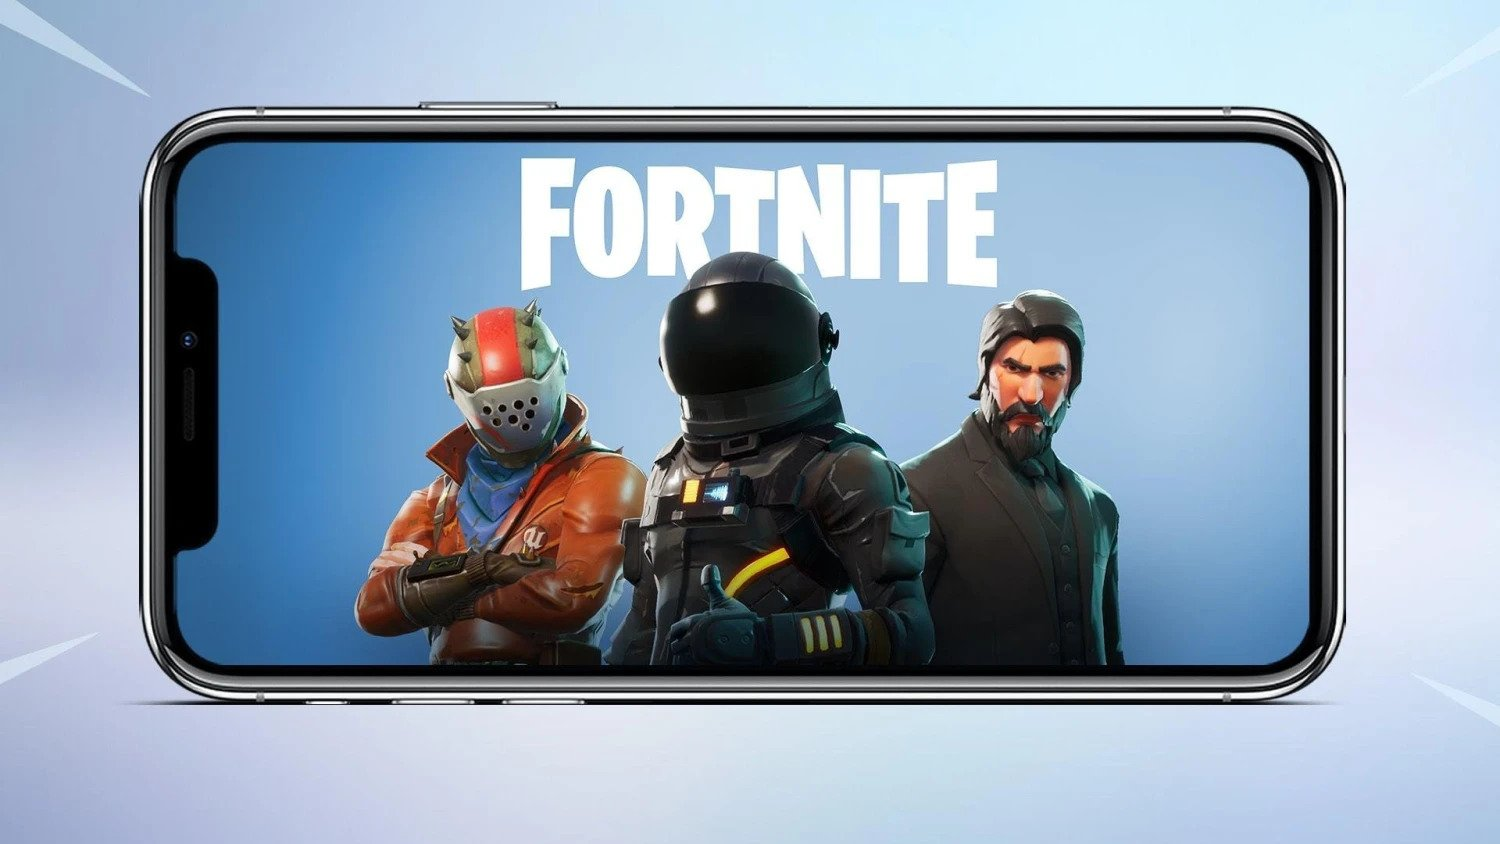 fortnite-epic-games-mobile